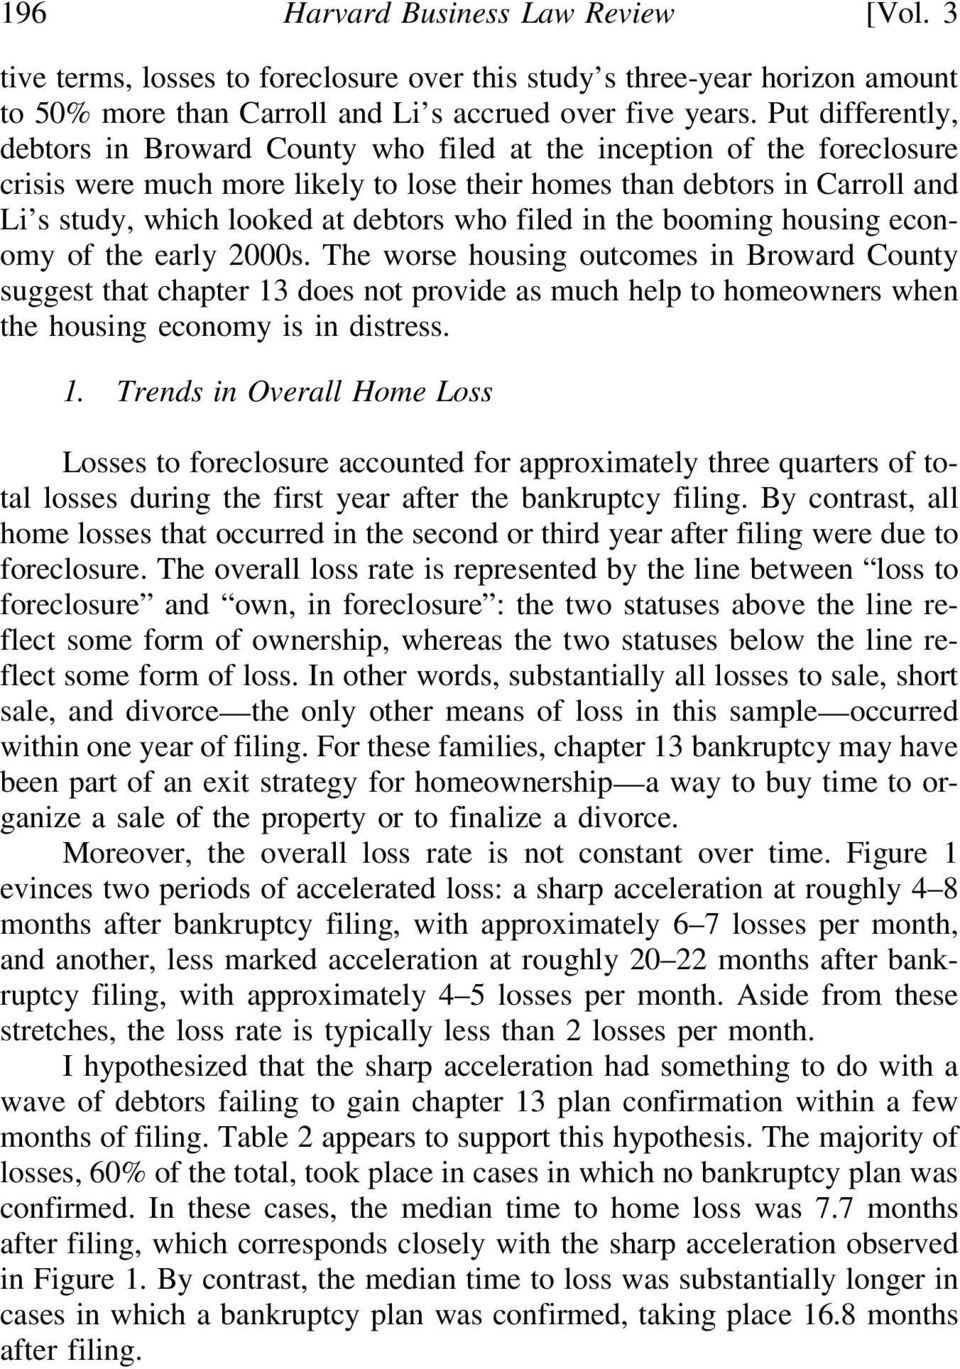 debtors who filed in the booming housing economy of the early 2000s.